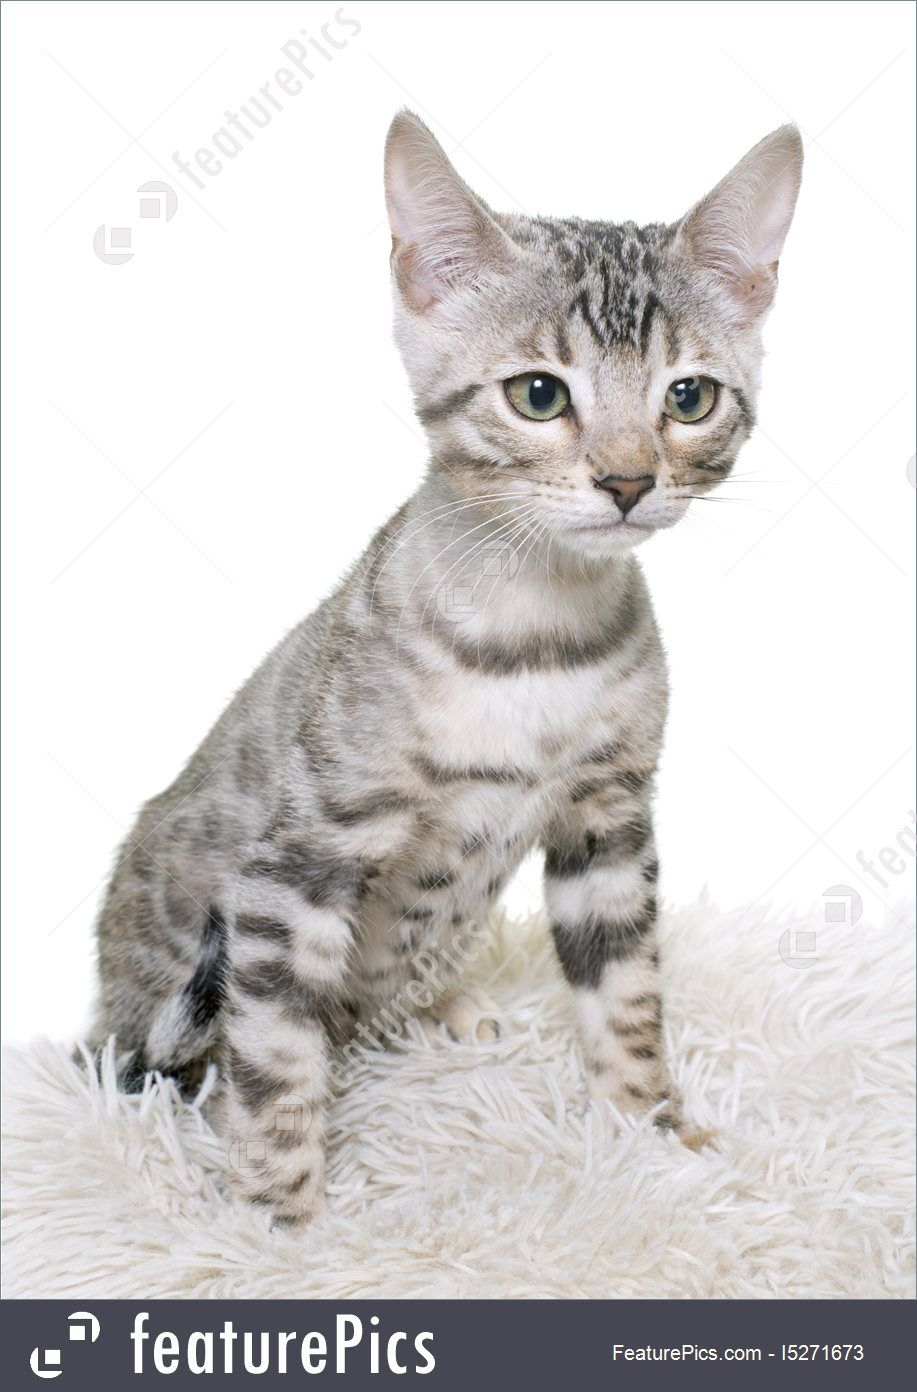 Related image Bengal cat, Cats, Animals